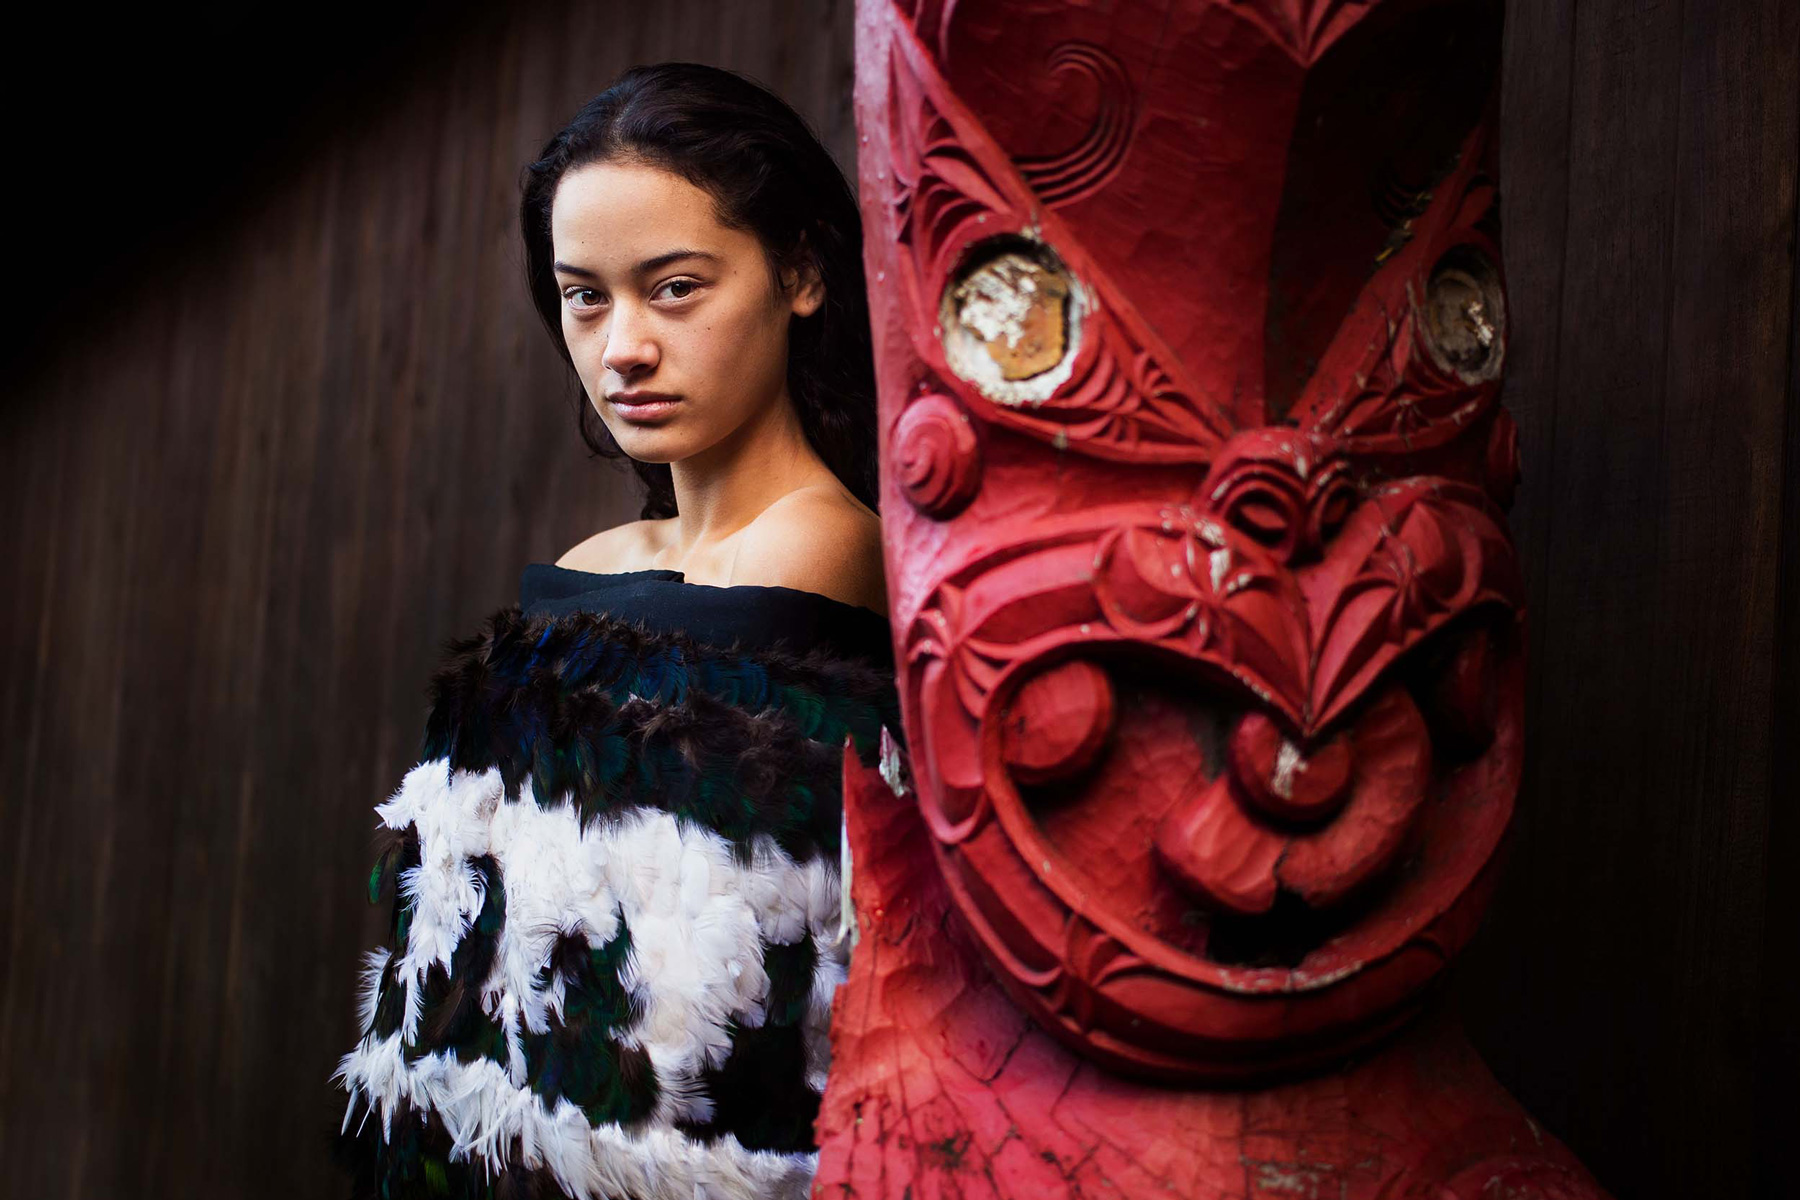 Mihaela-Noroc-Atlas-of-Beauty-Maori-New-Zealand